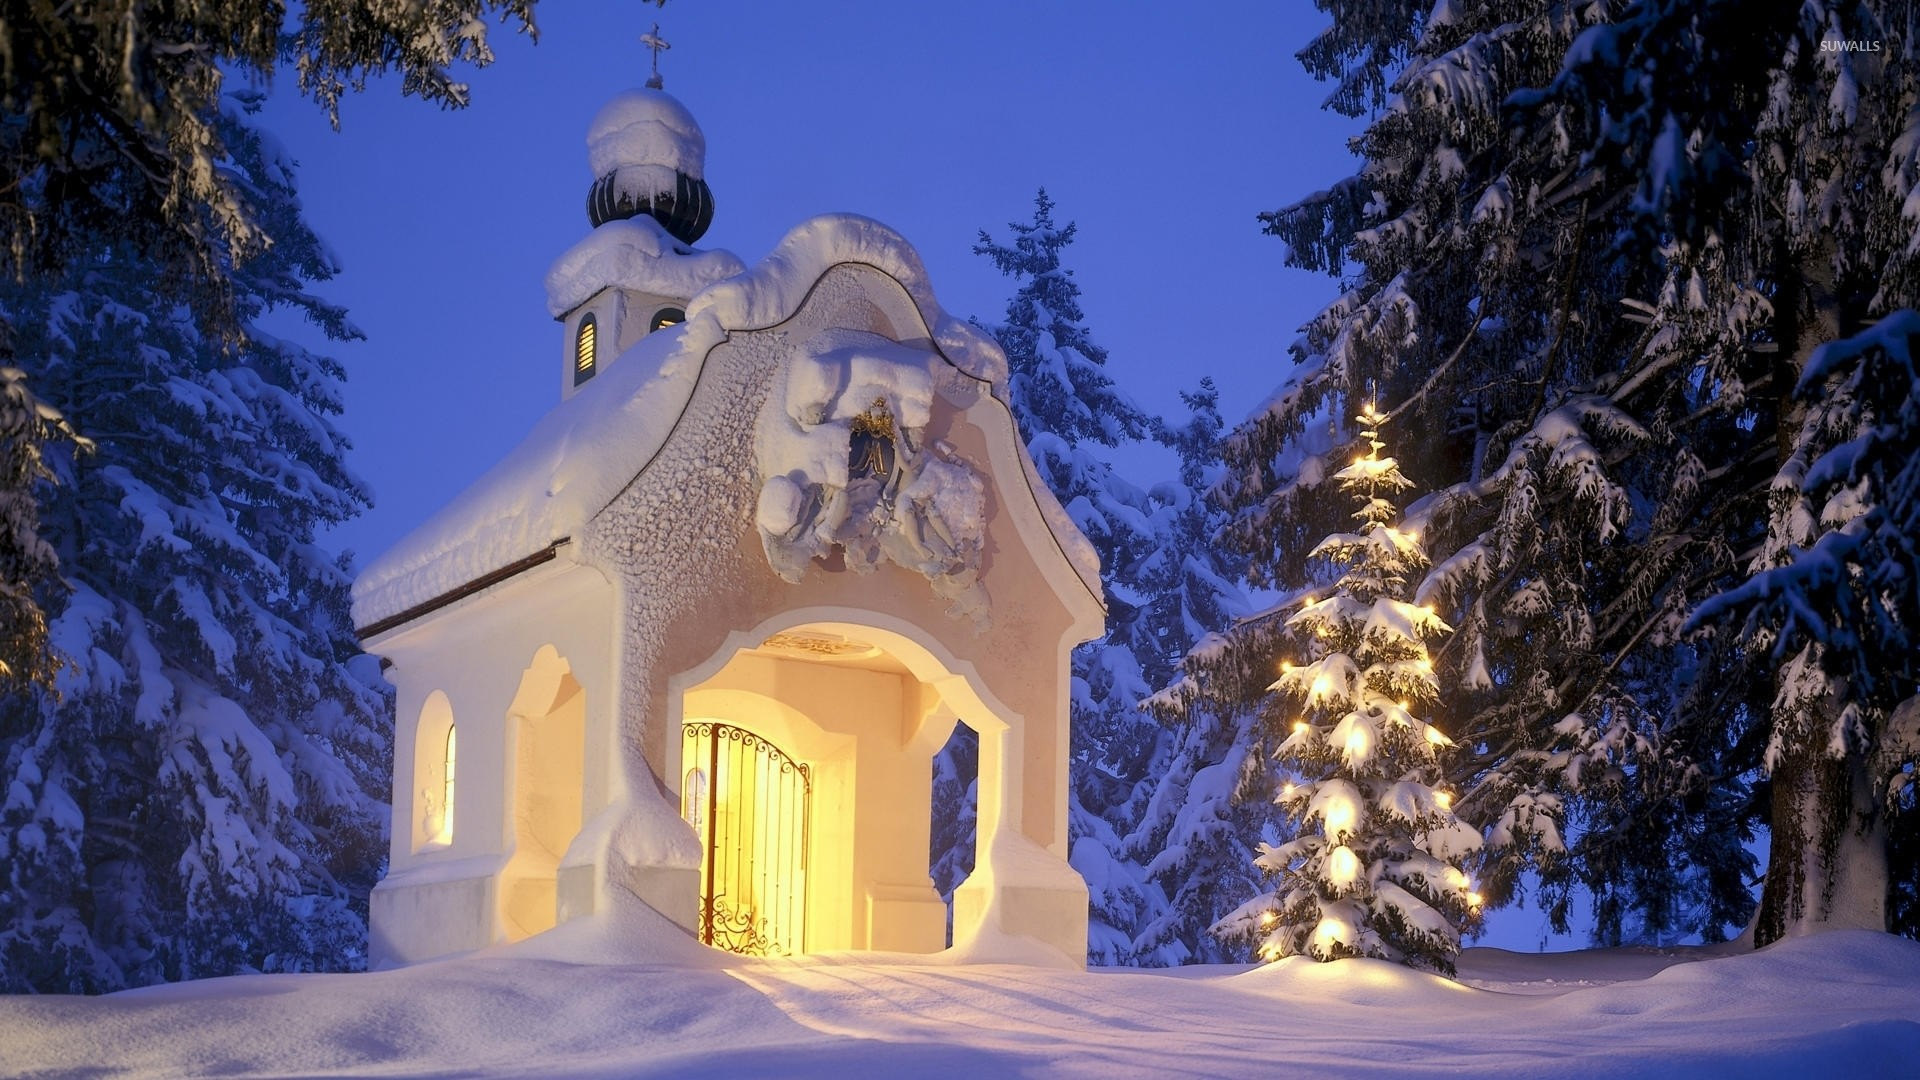 1920x1080 Small church in the snowy forest wallpaper  jpg